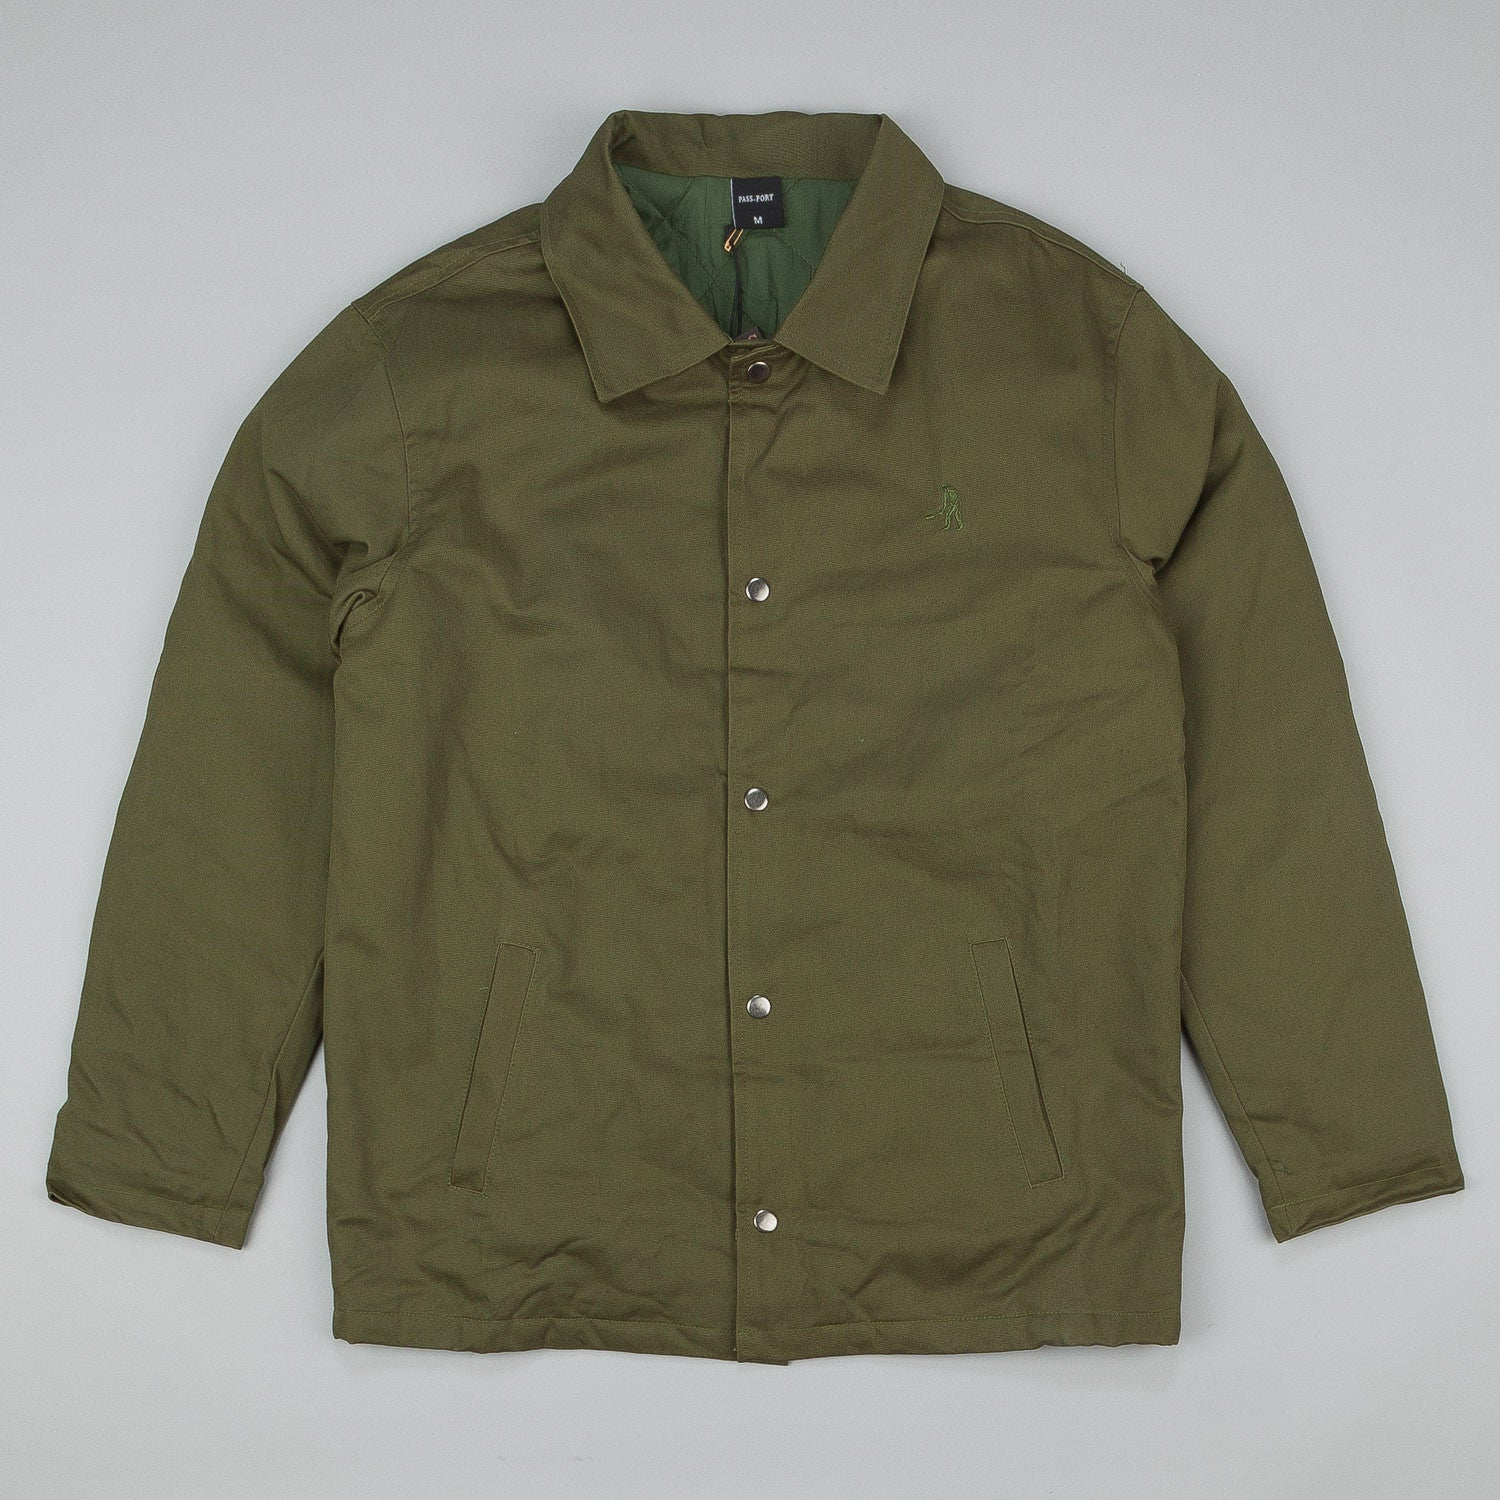 Pass Port Workers Jacket - Grass